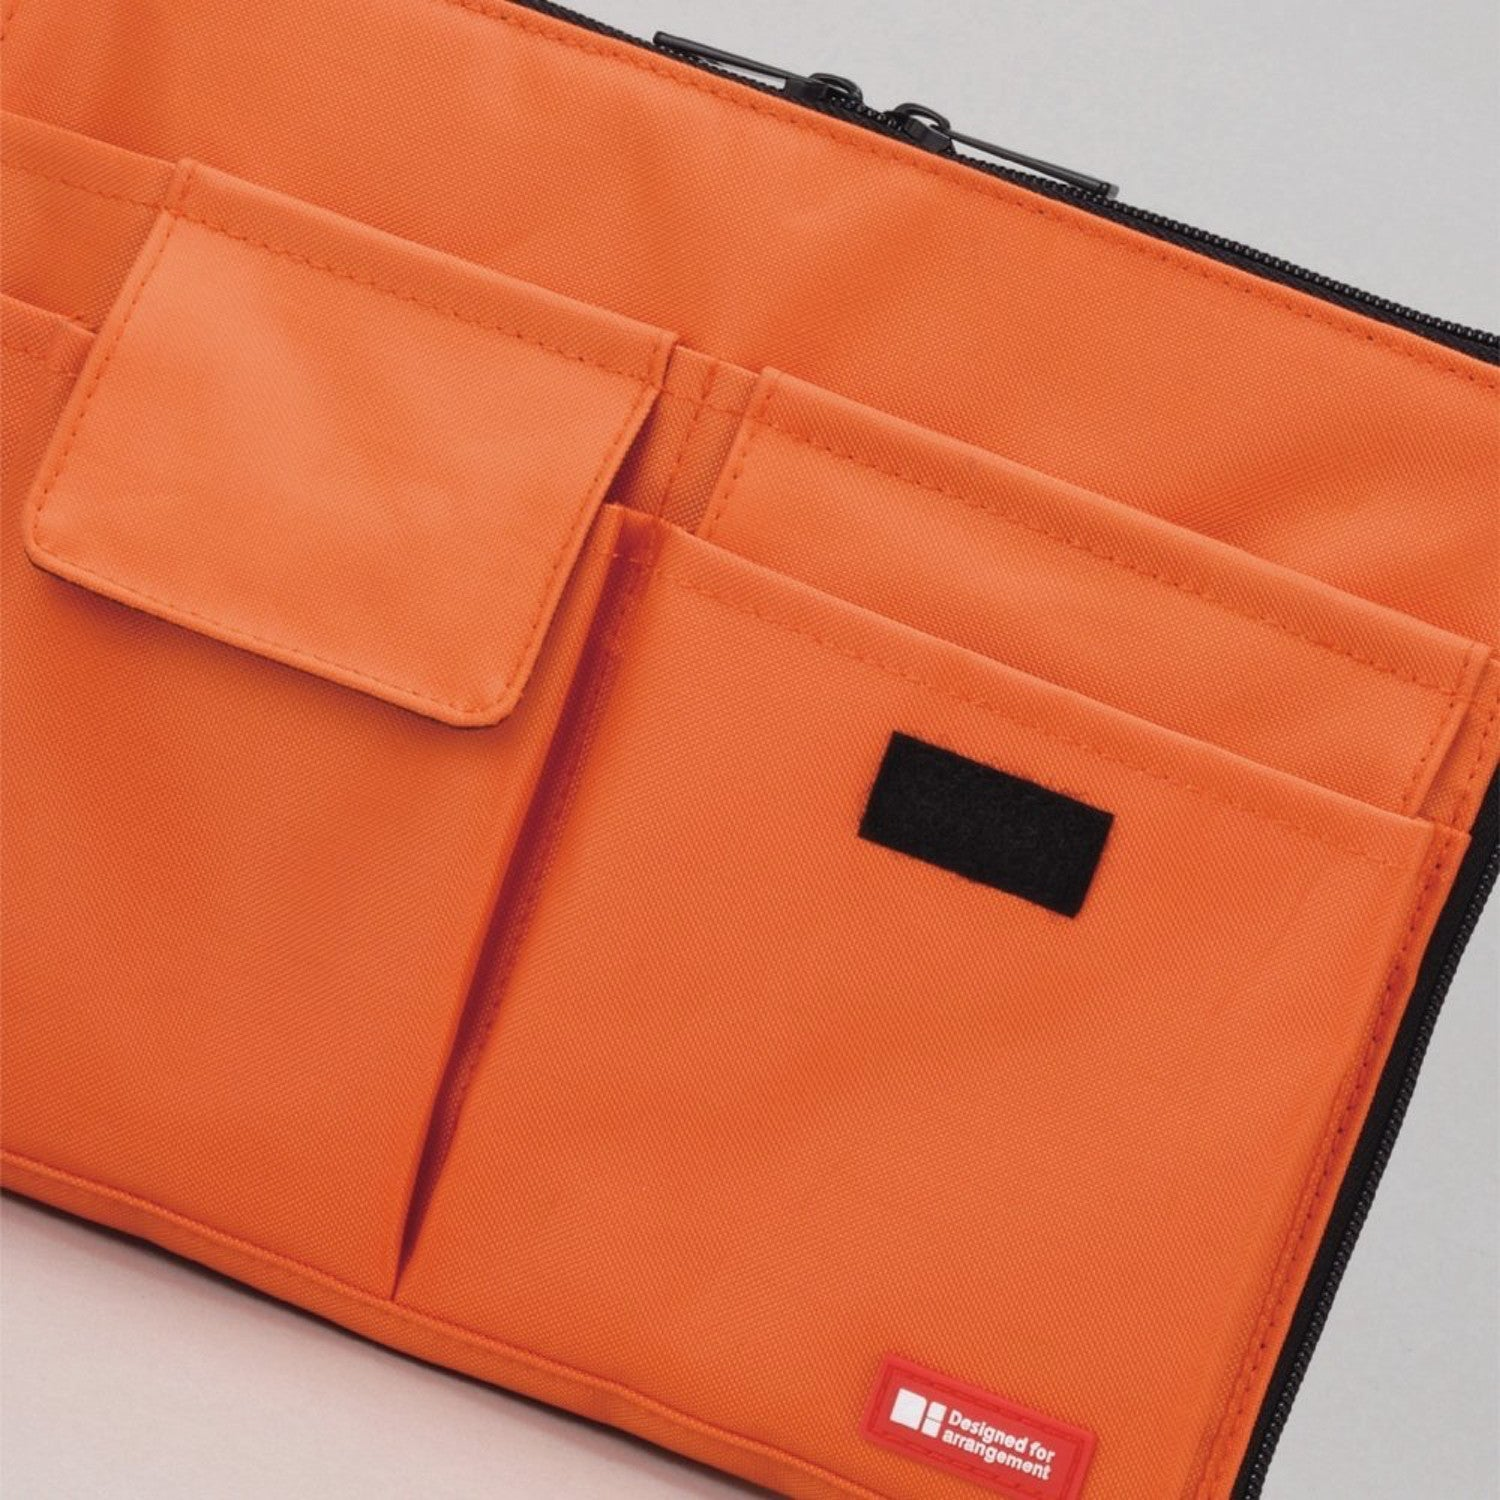 LIHIT LAB Bag Insert Organizer With Storage Pockets (Bag-in-Bag), Orange, 7.1 x 9.8 Inches (A7553-4)